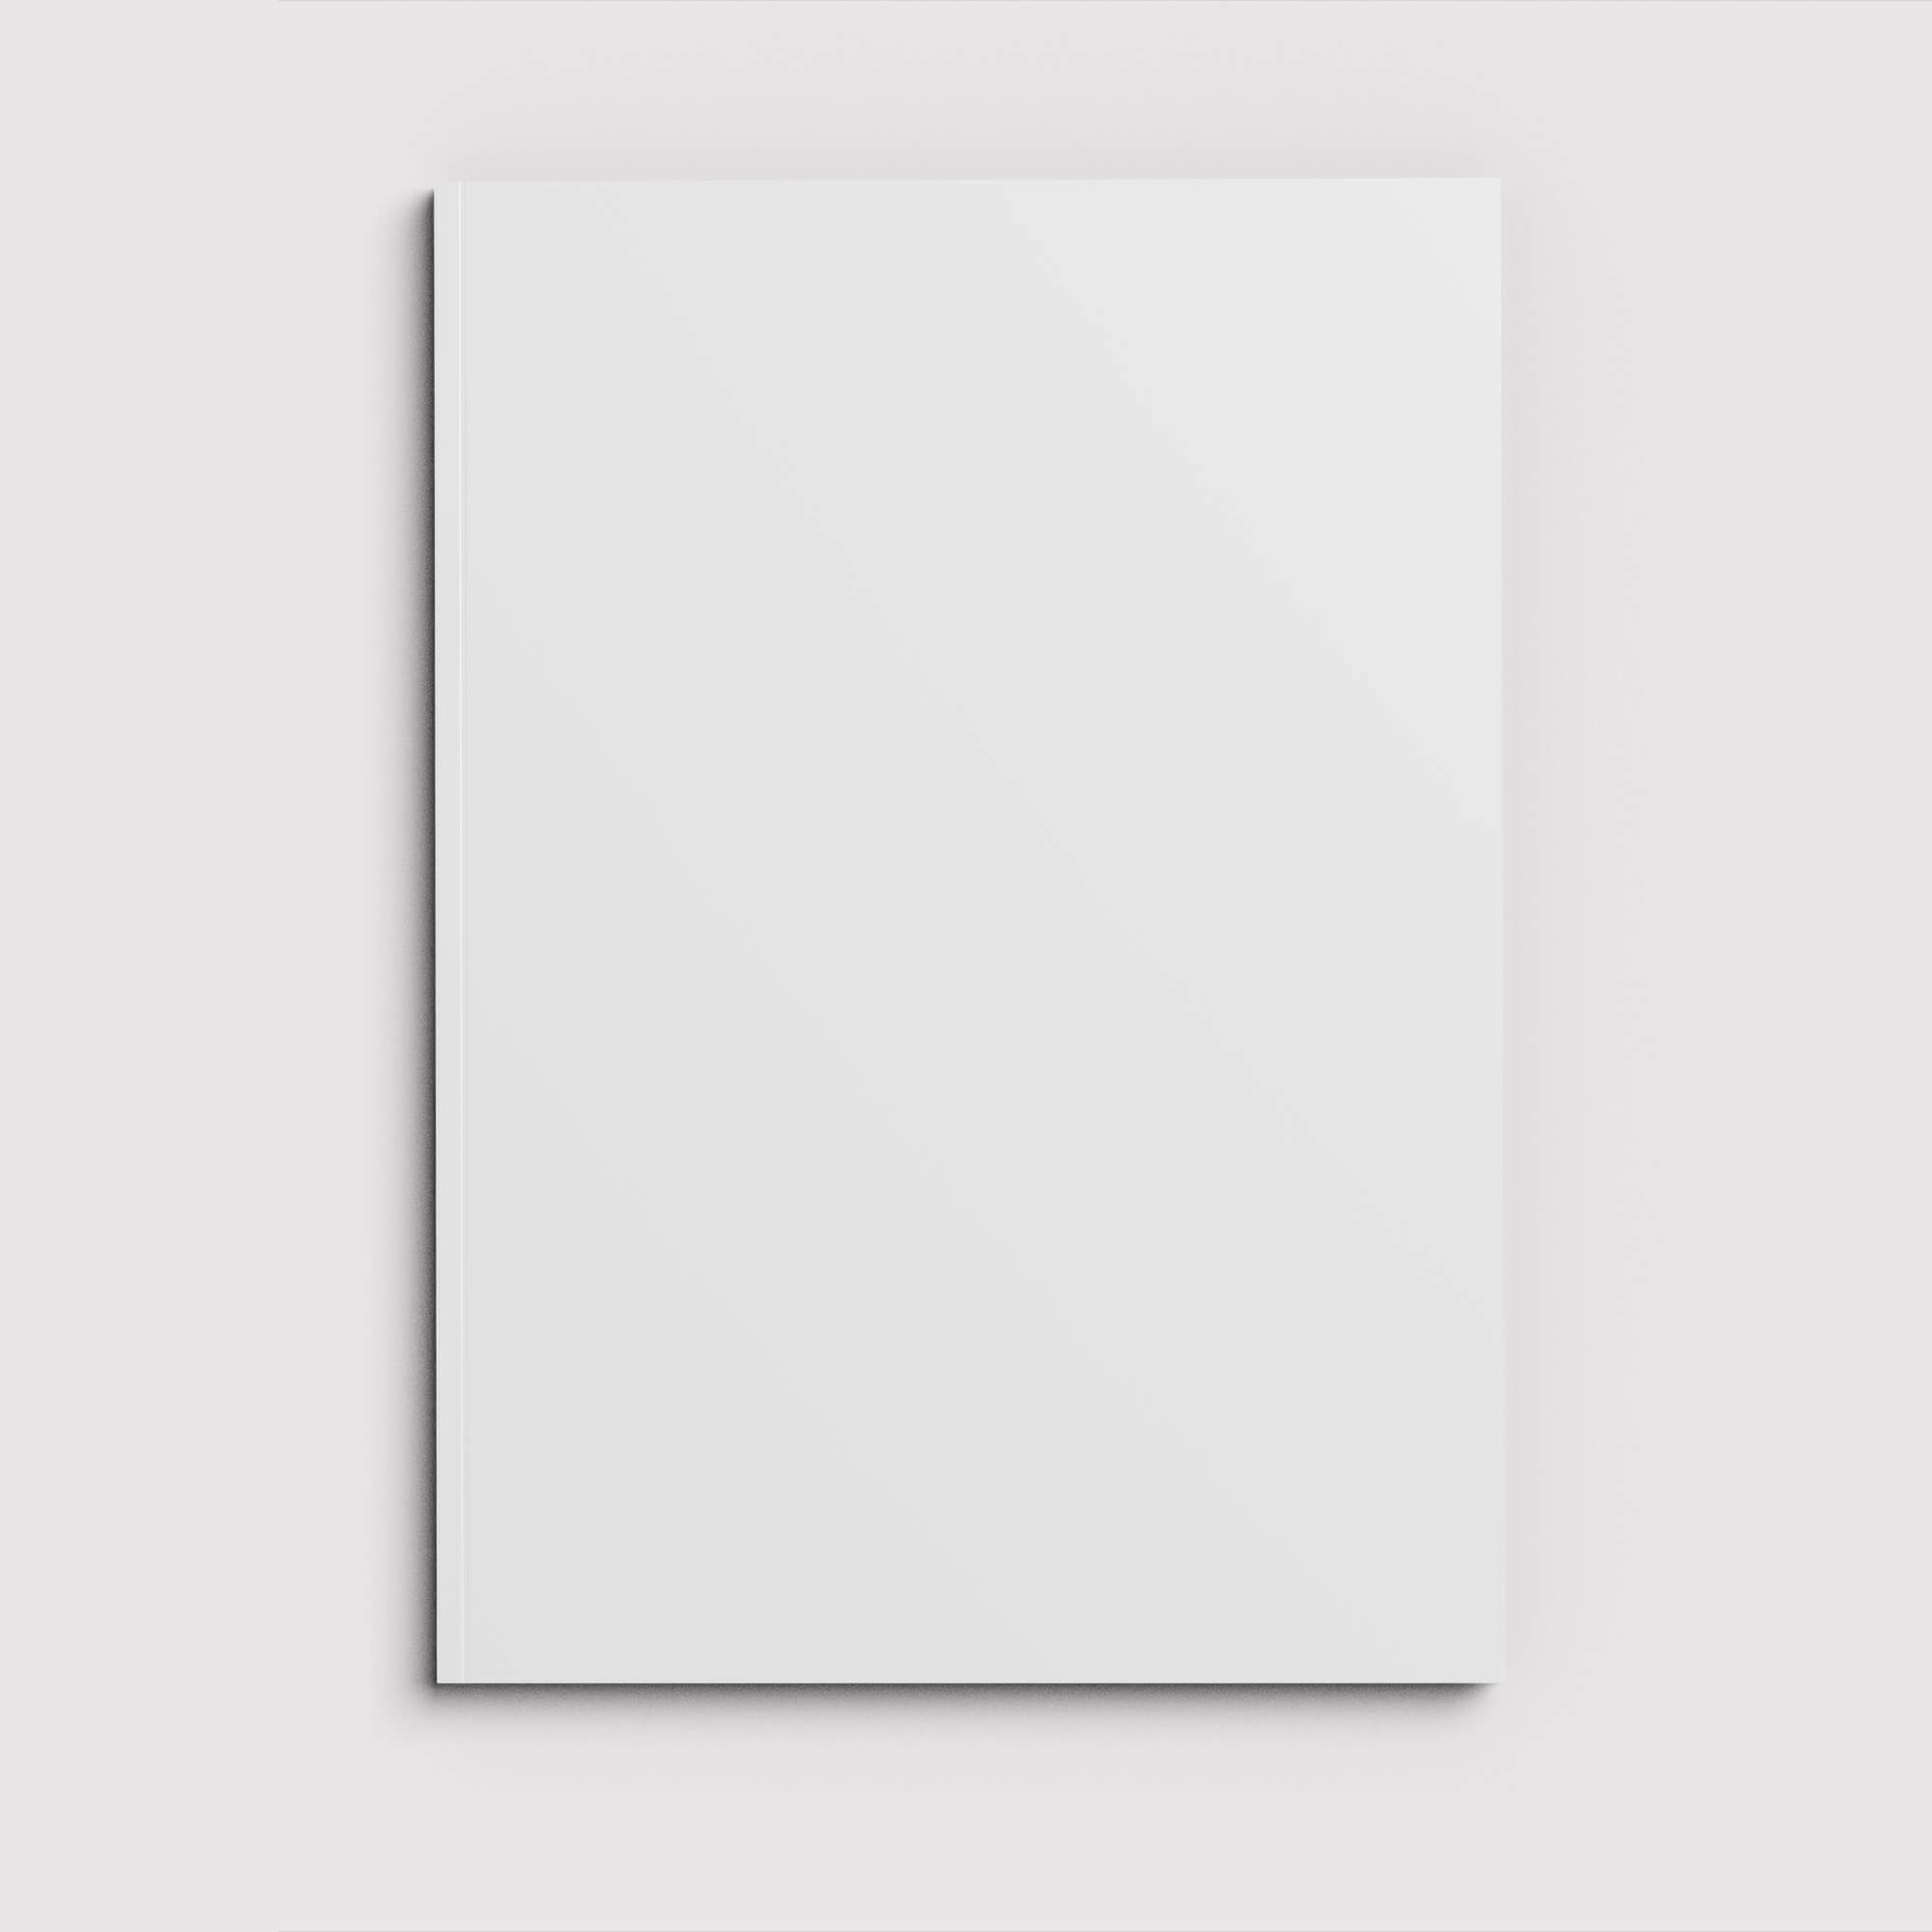 Blank Free Soft Cover Mockup PSD Template